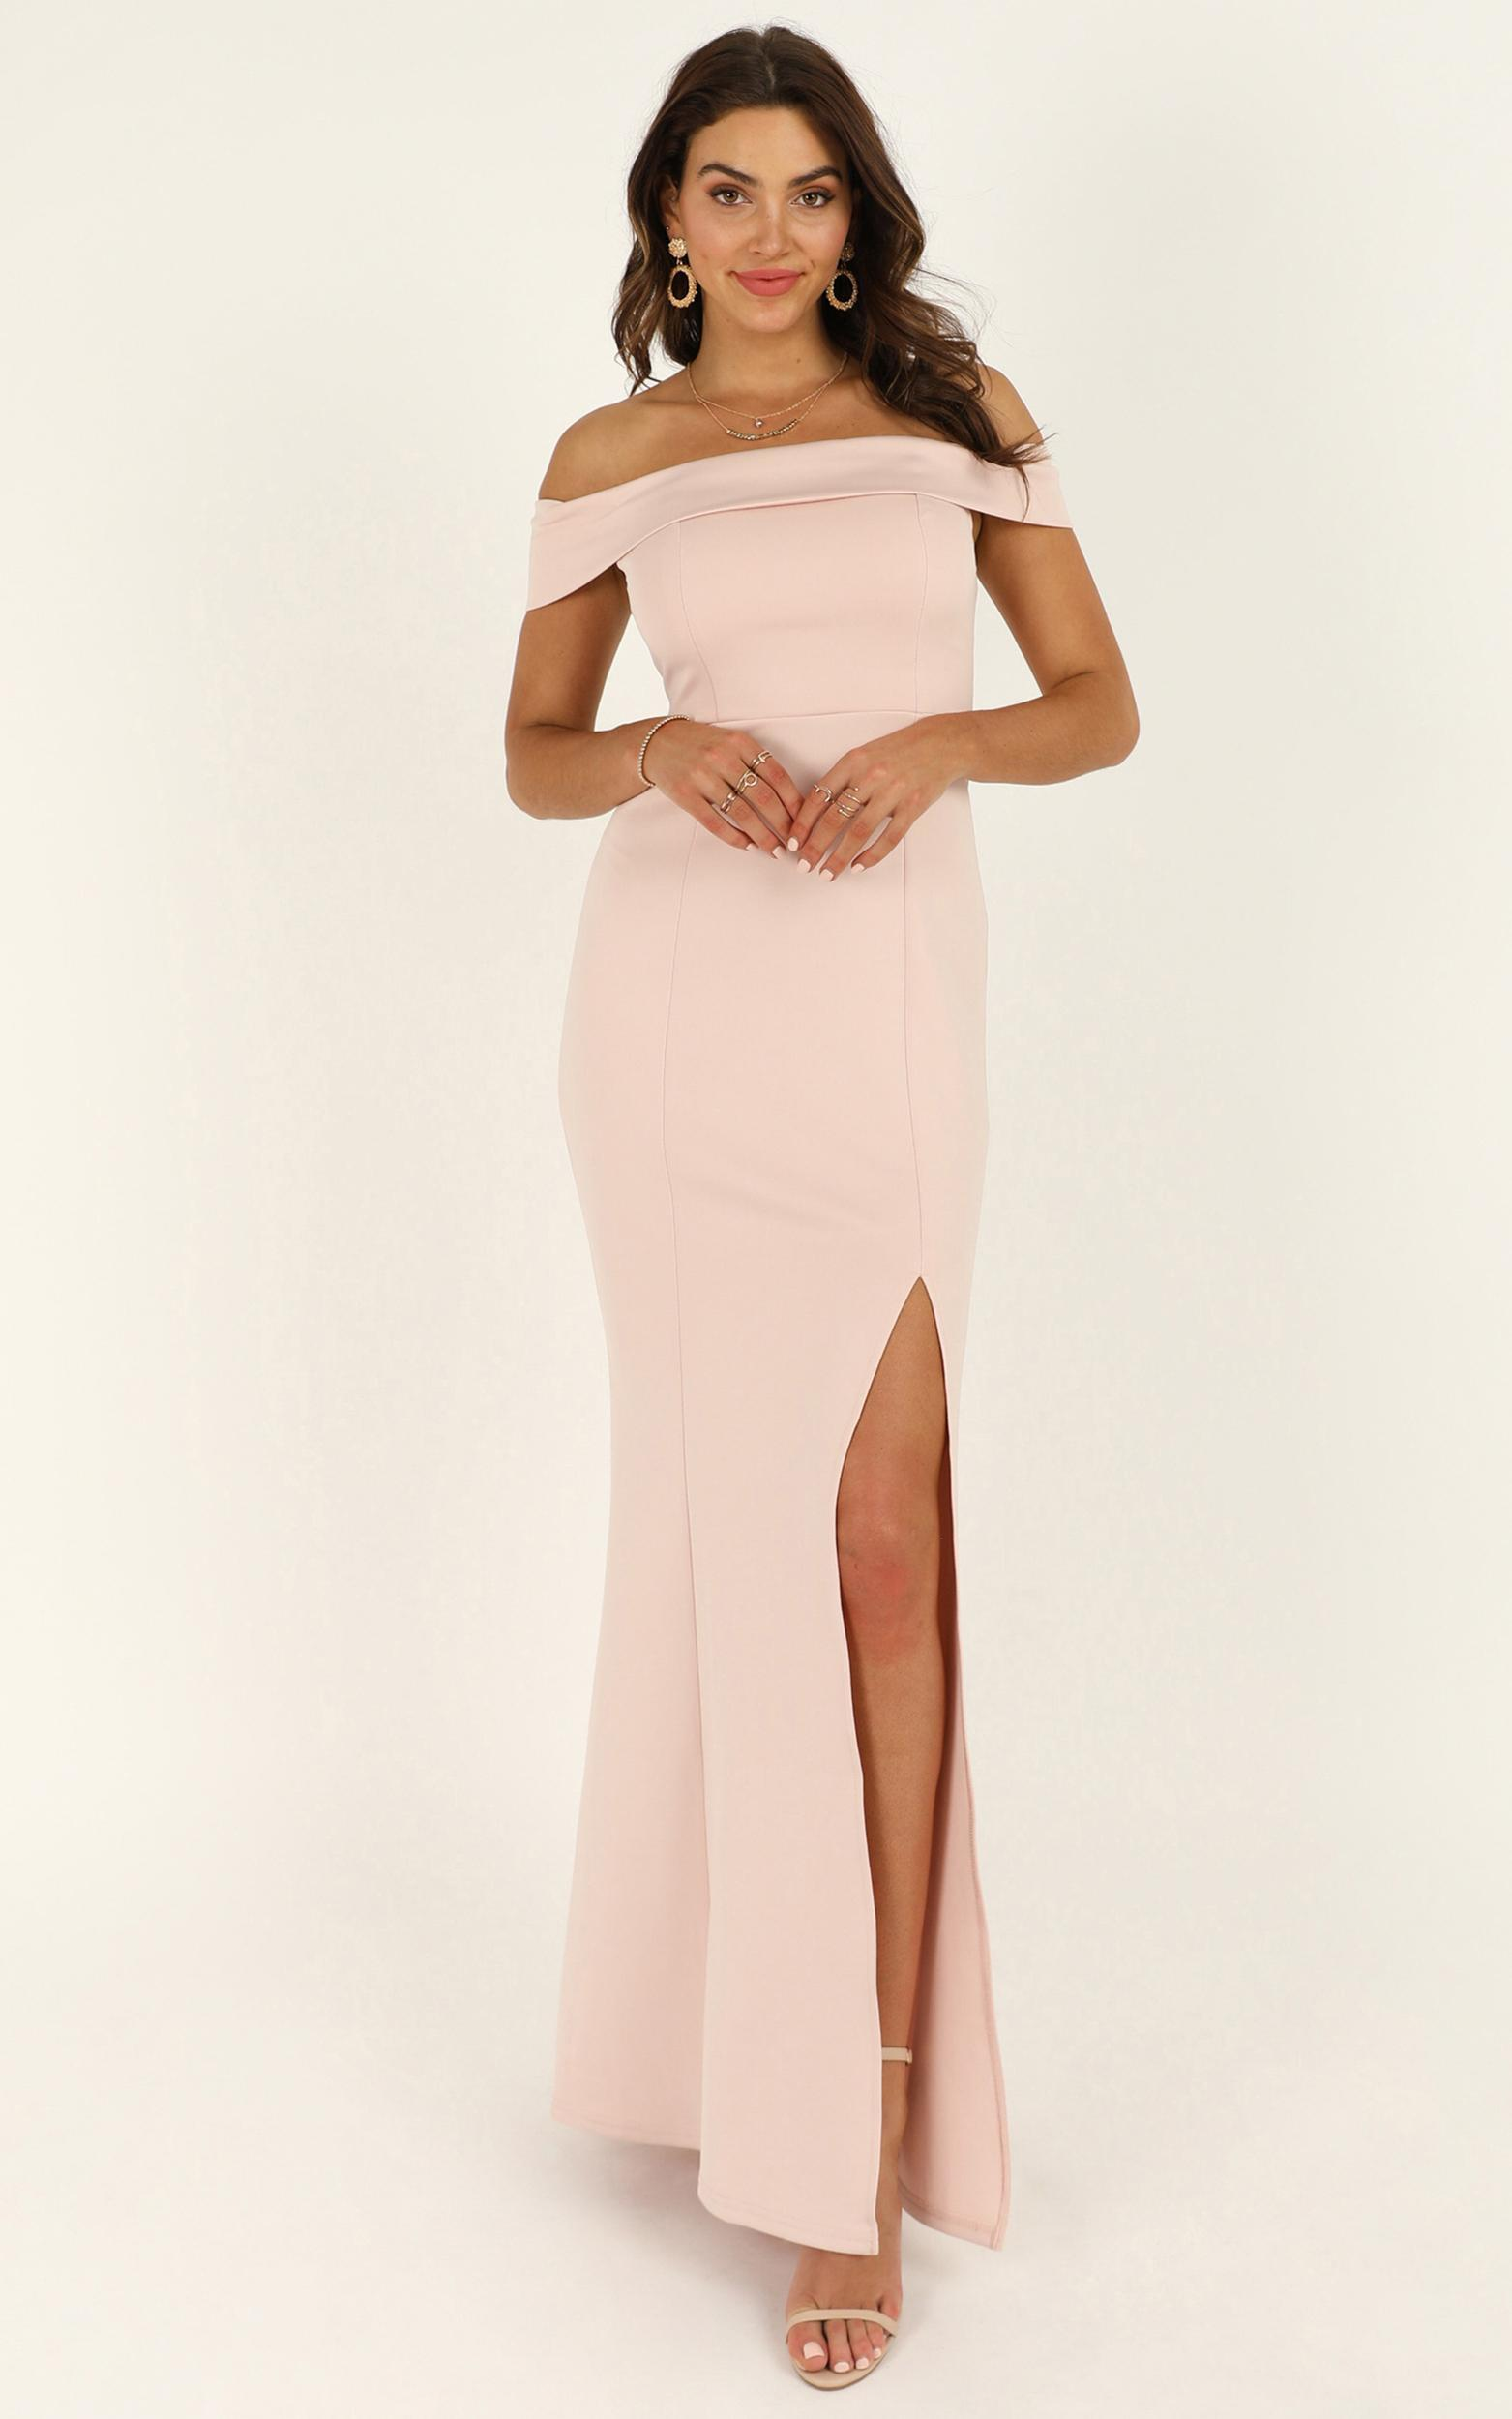 We Got This Feeling Dress in blush - 20 (XXXXL), Blush, hi-res image number null